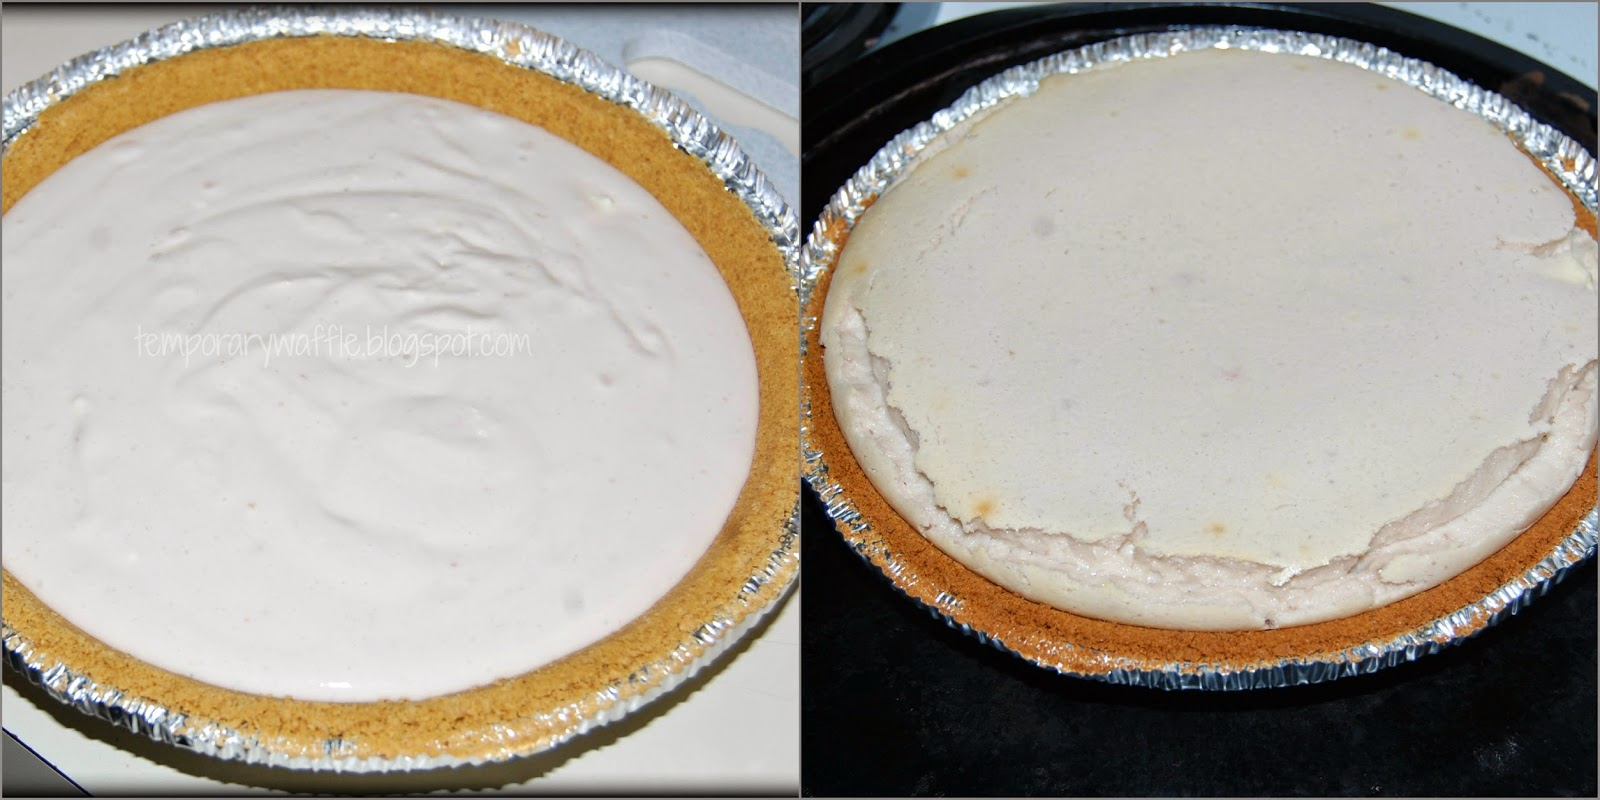 Keebler Ready Crust Baked Cheesecake